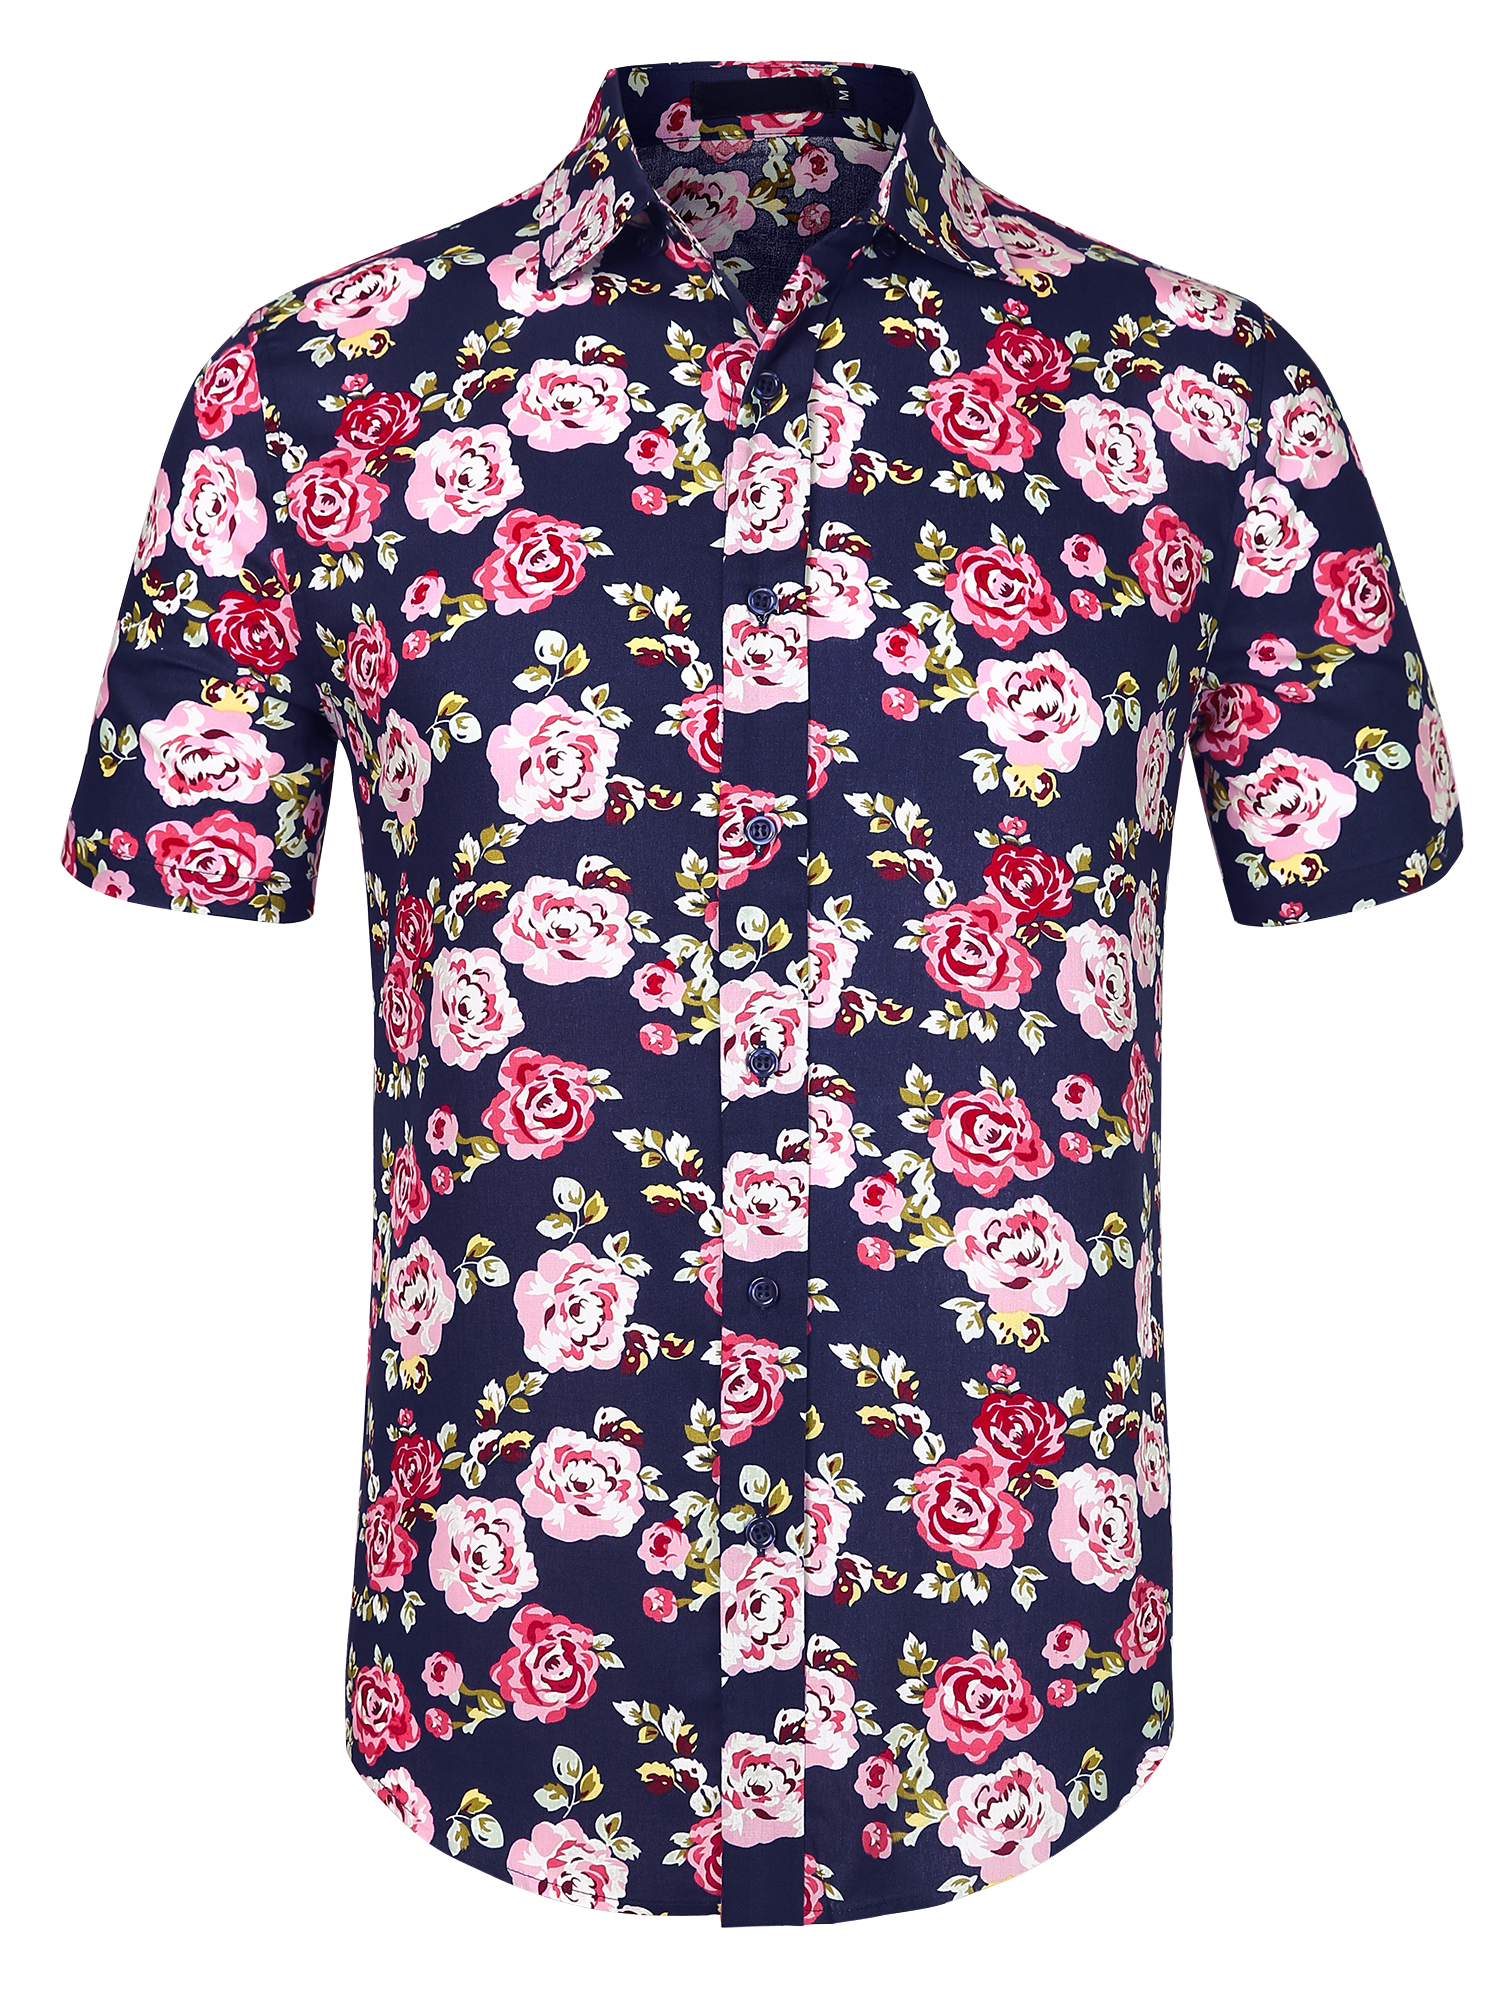 Men Floral Print Slim Fit Point Collar Short Sleeve Button Down Shirt Black Pink S